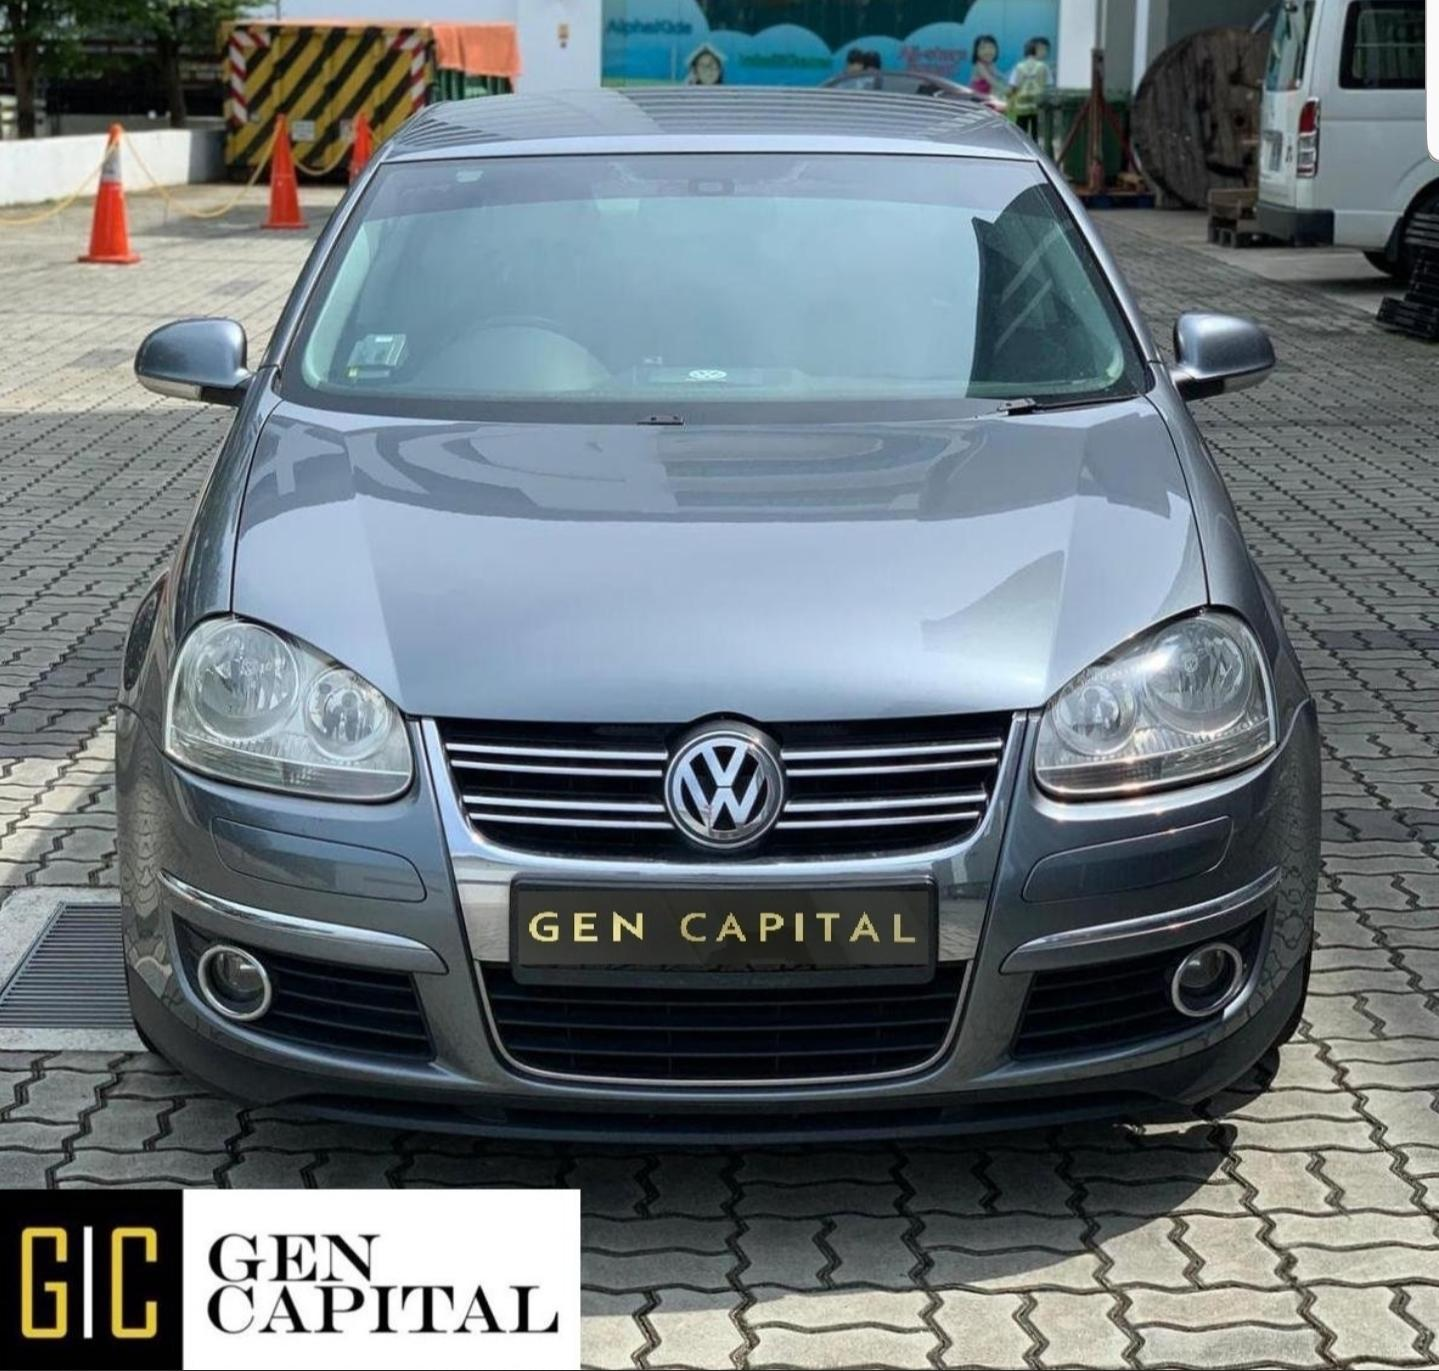 Volkswagen Jetta * Lowest rental rates, good condition!